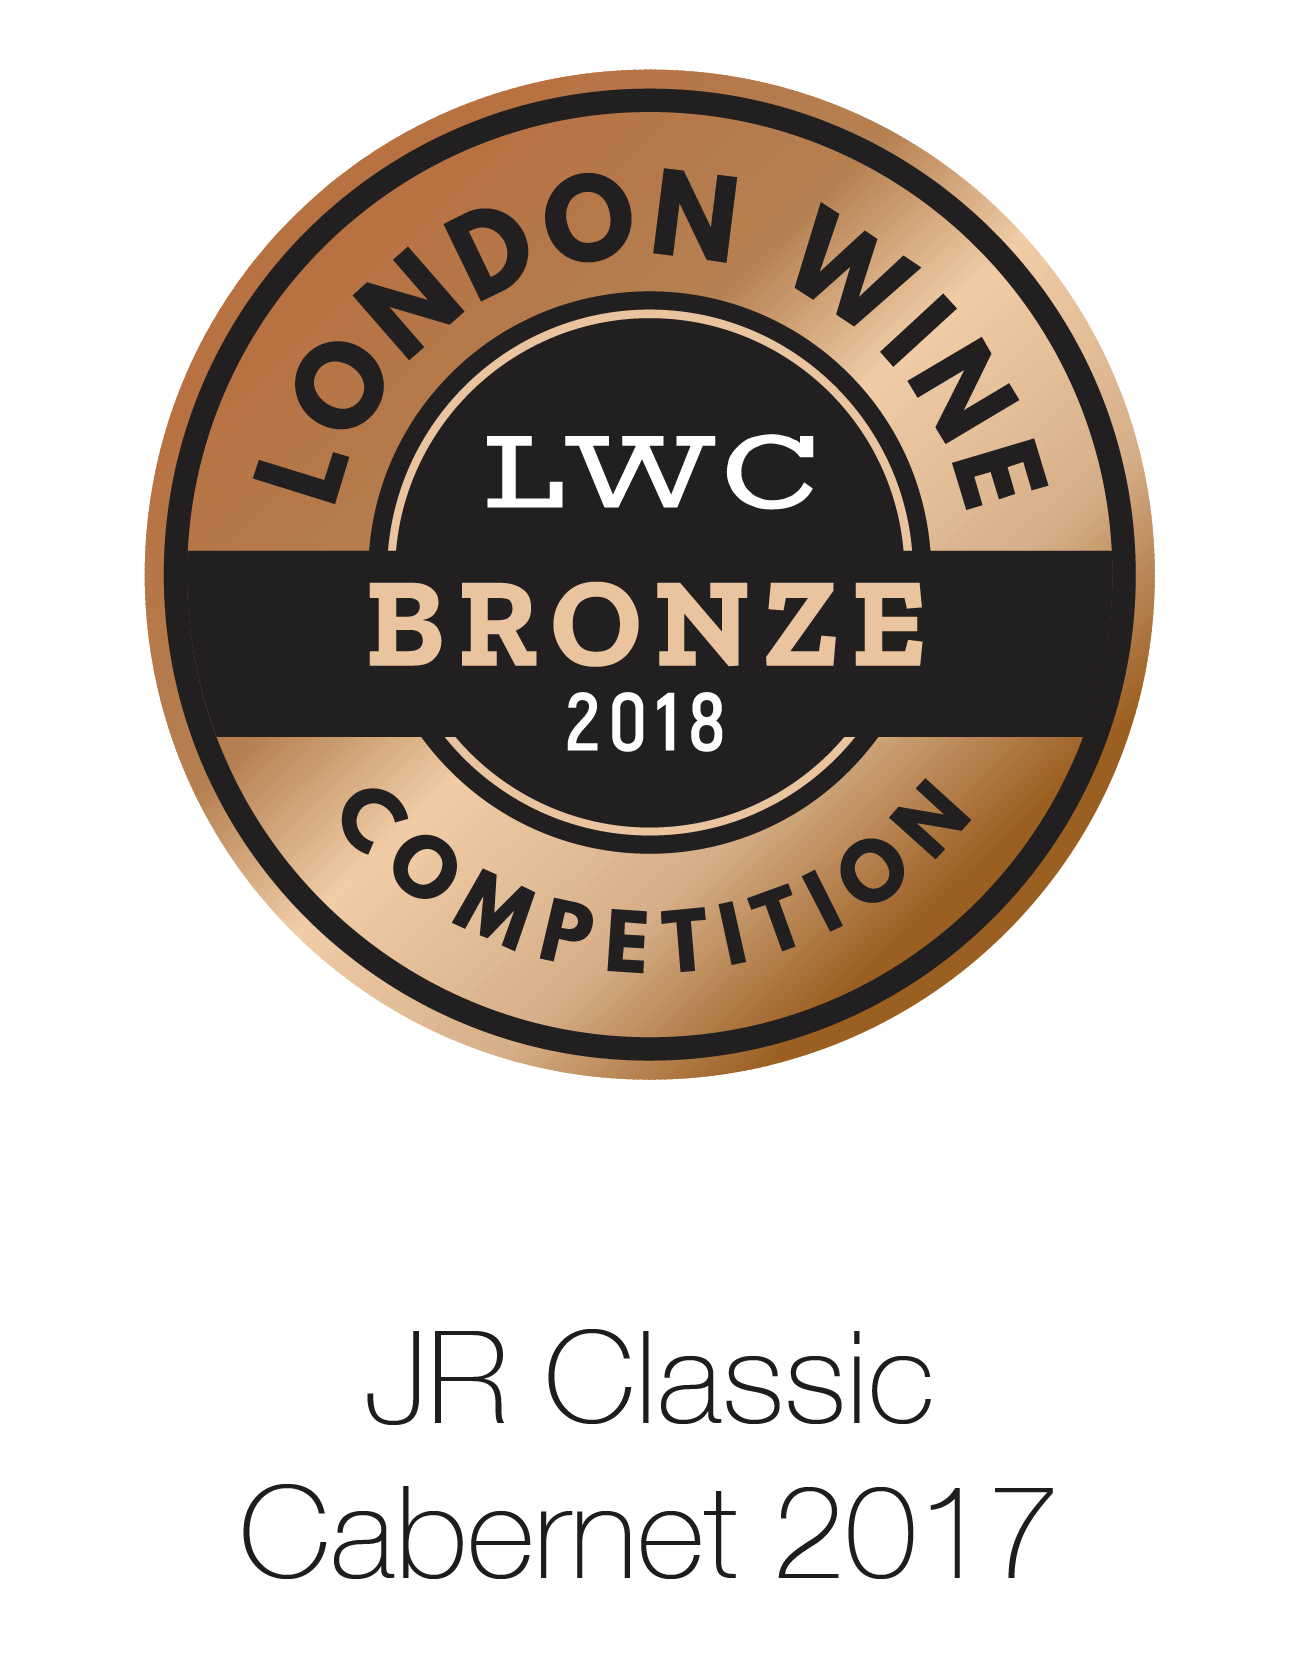 JR Classic - Cabernet Sauvignon 2017 - London Wine Competition 2018